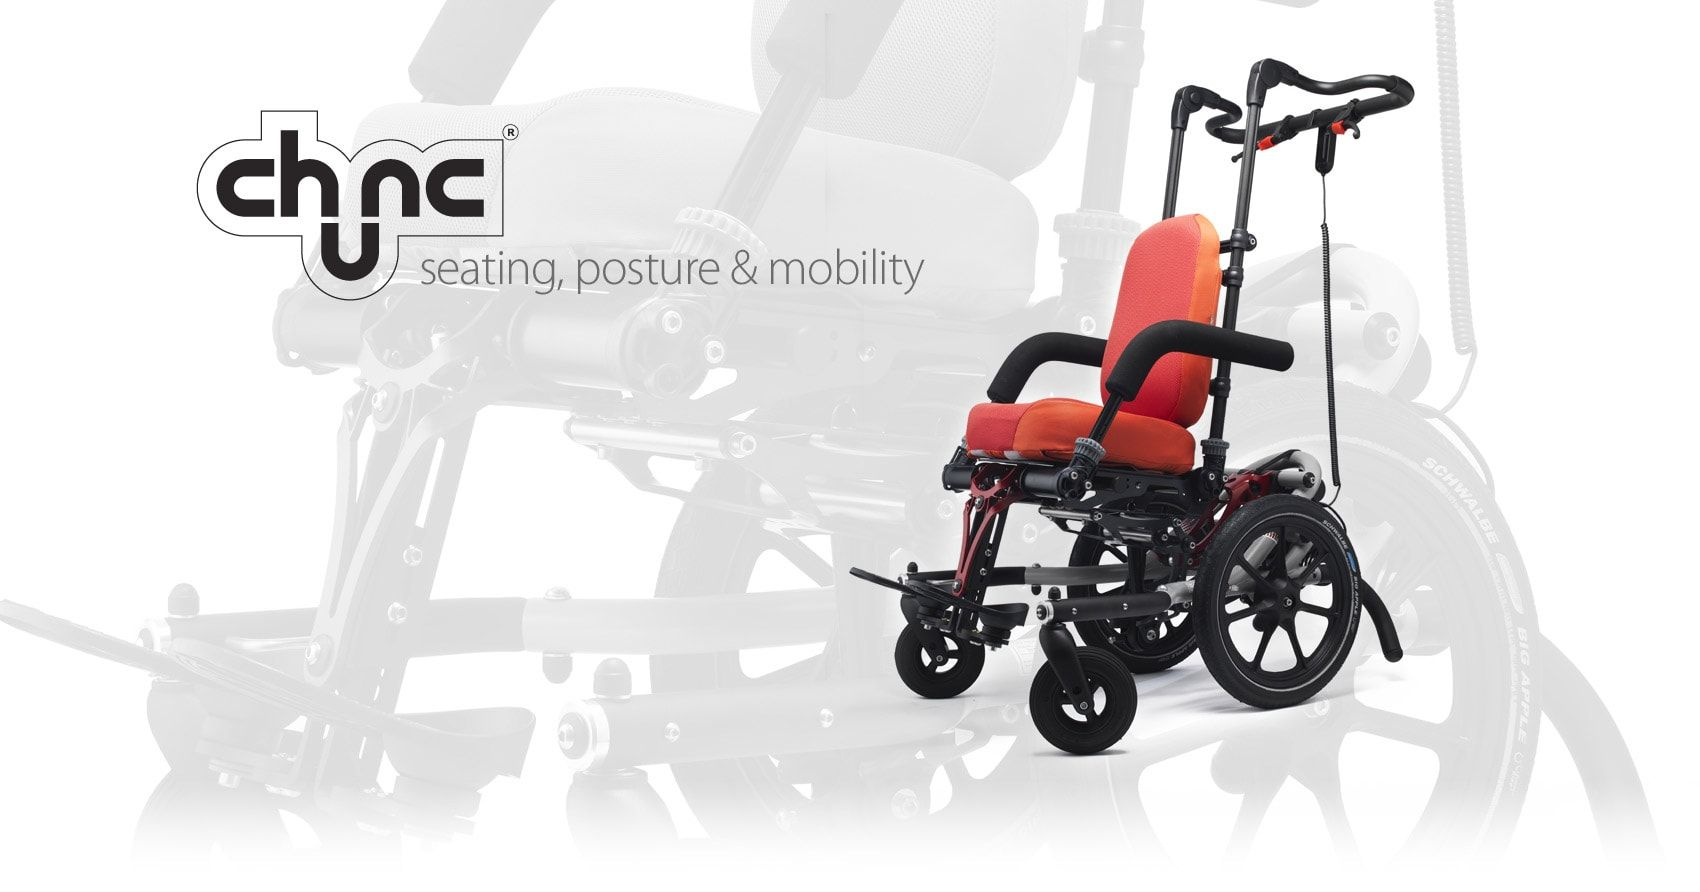 chunc hilo outdoor wheelchair